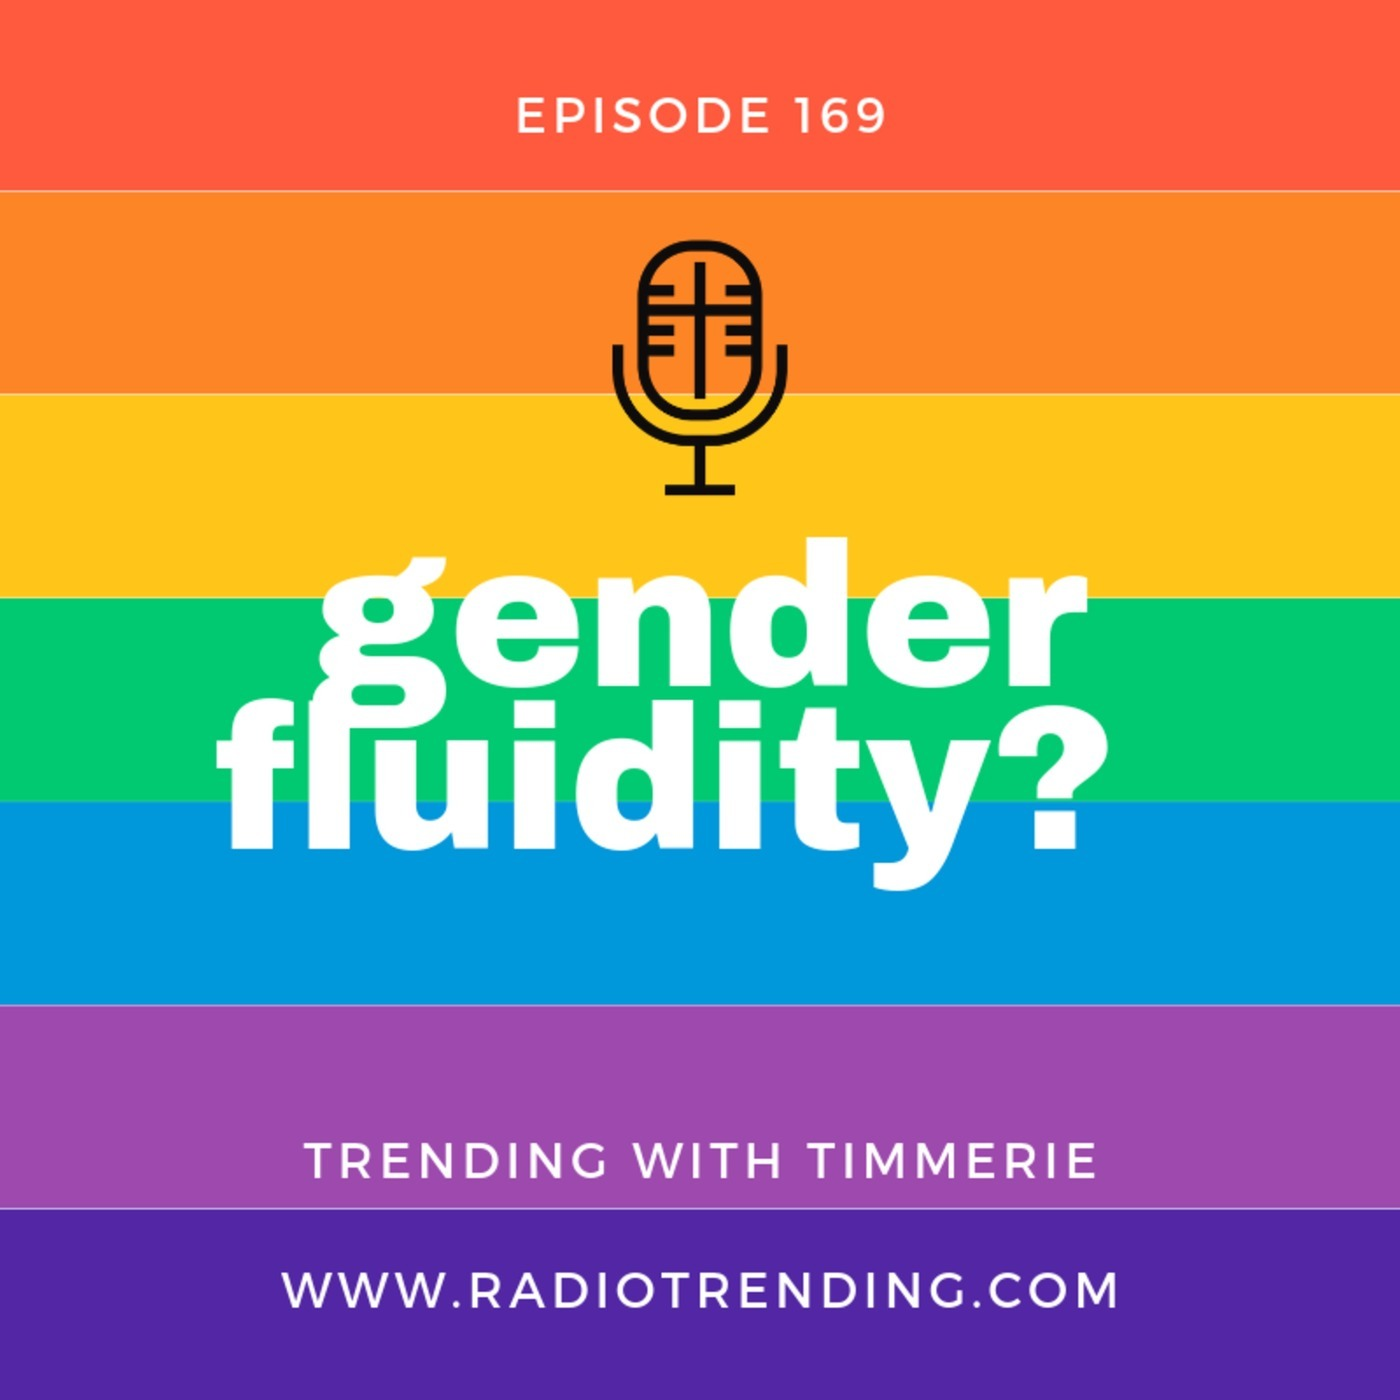 Trending with Timmerie 169: Gender Fluidity